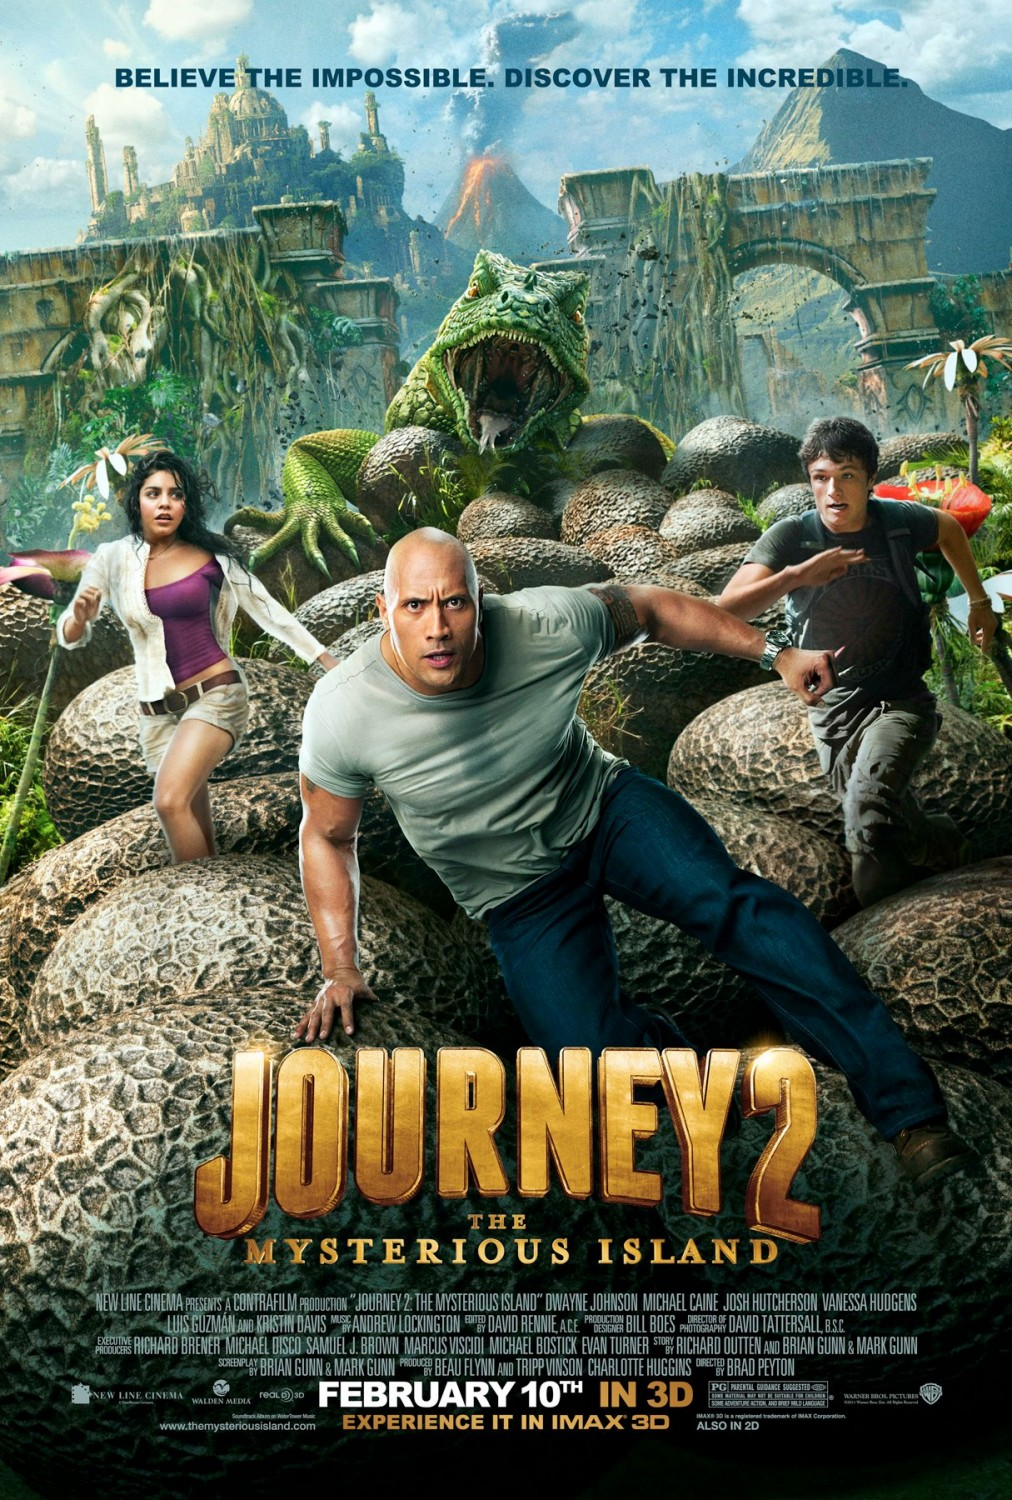 Journey-2-The-Mysterious-Island-Poster-001.jpg